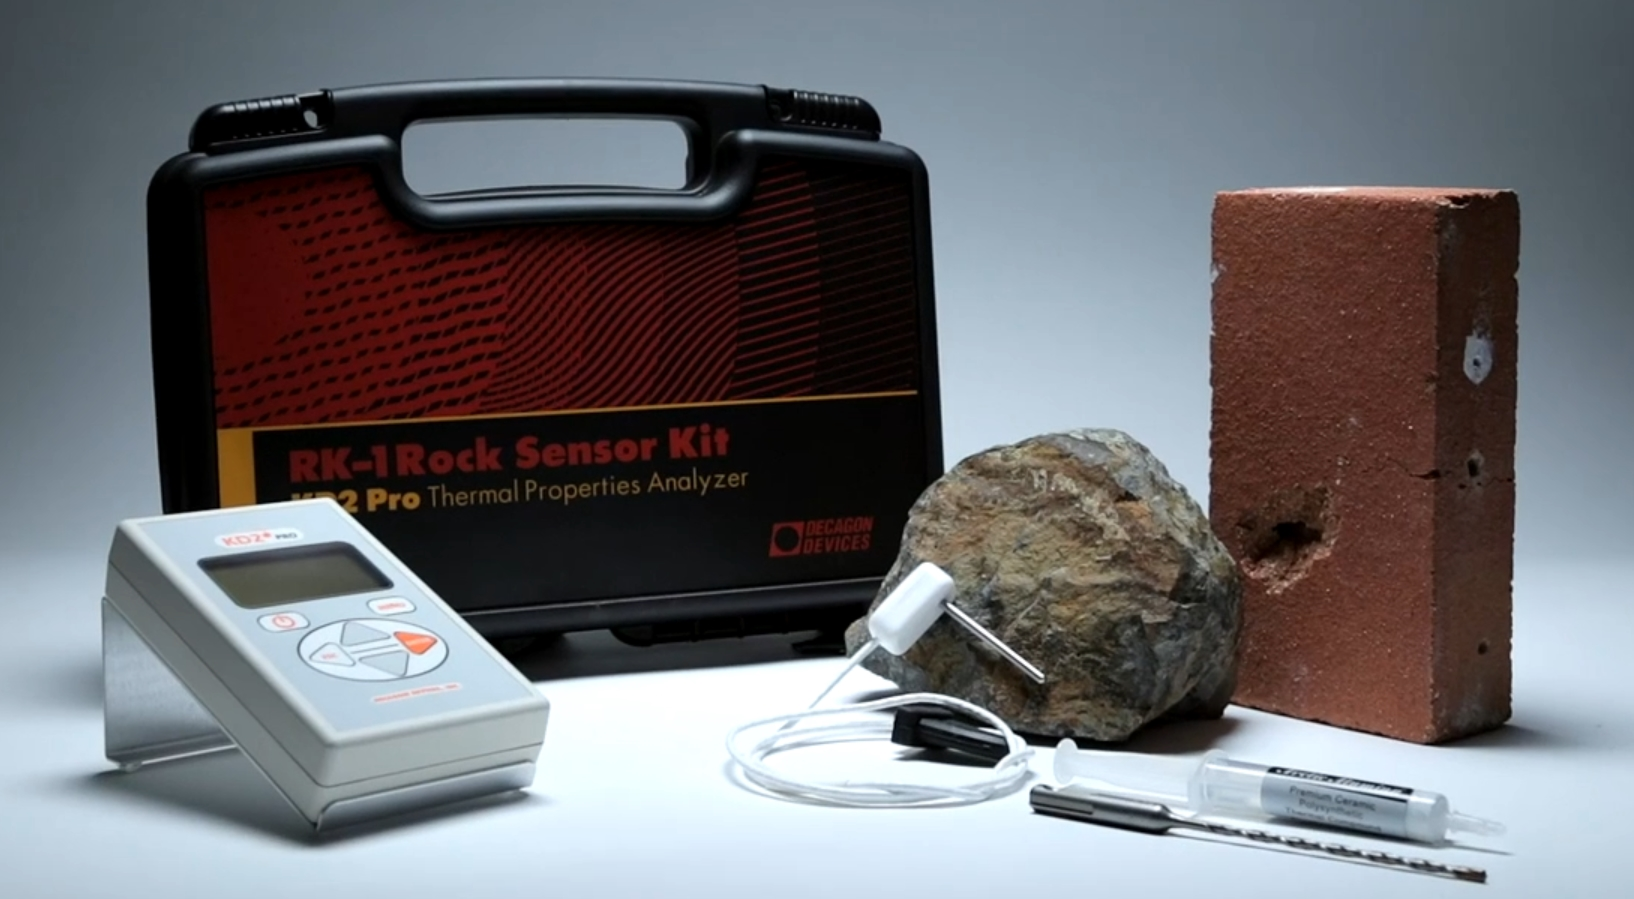 RK-1 Rock Sensor Package